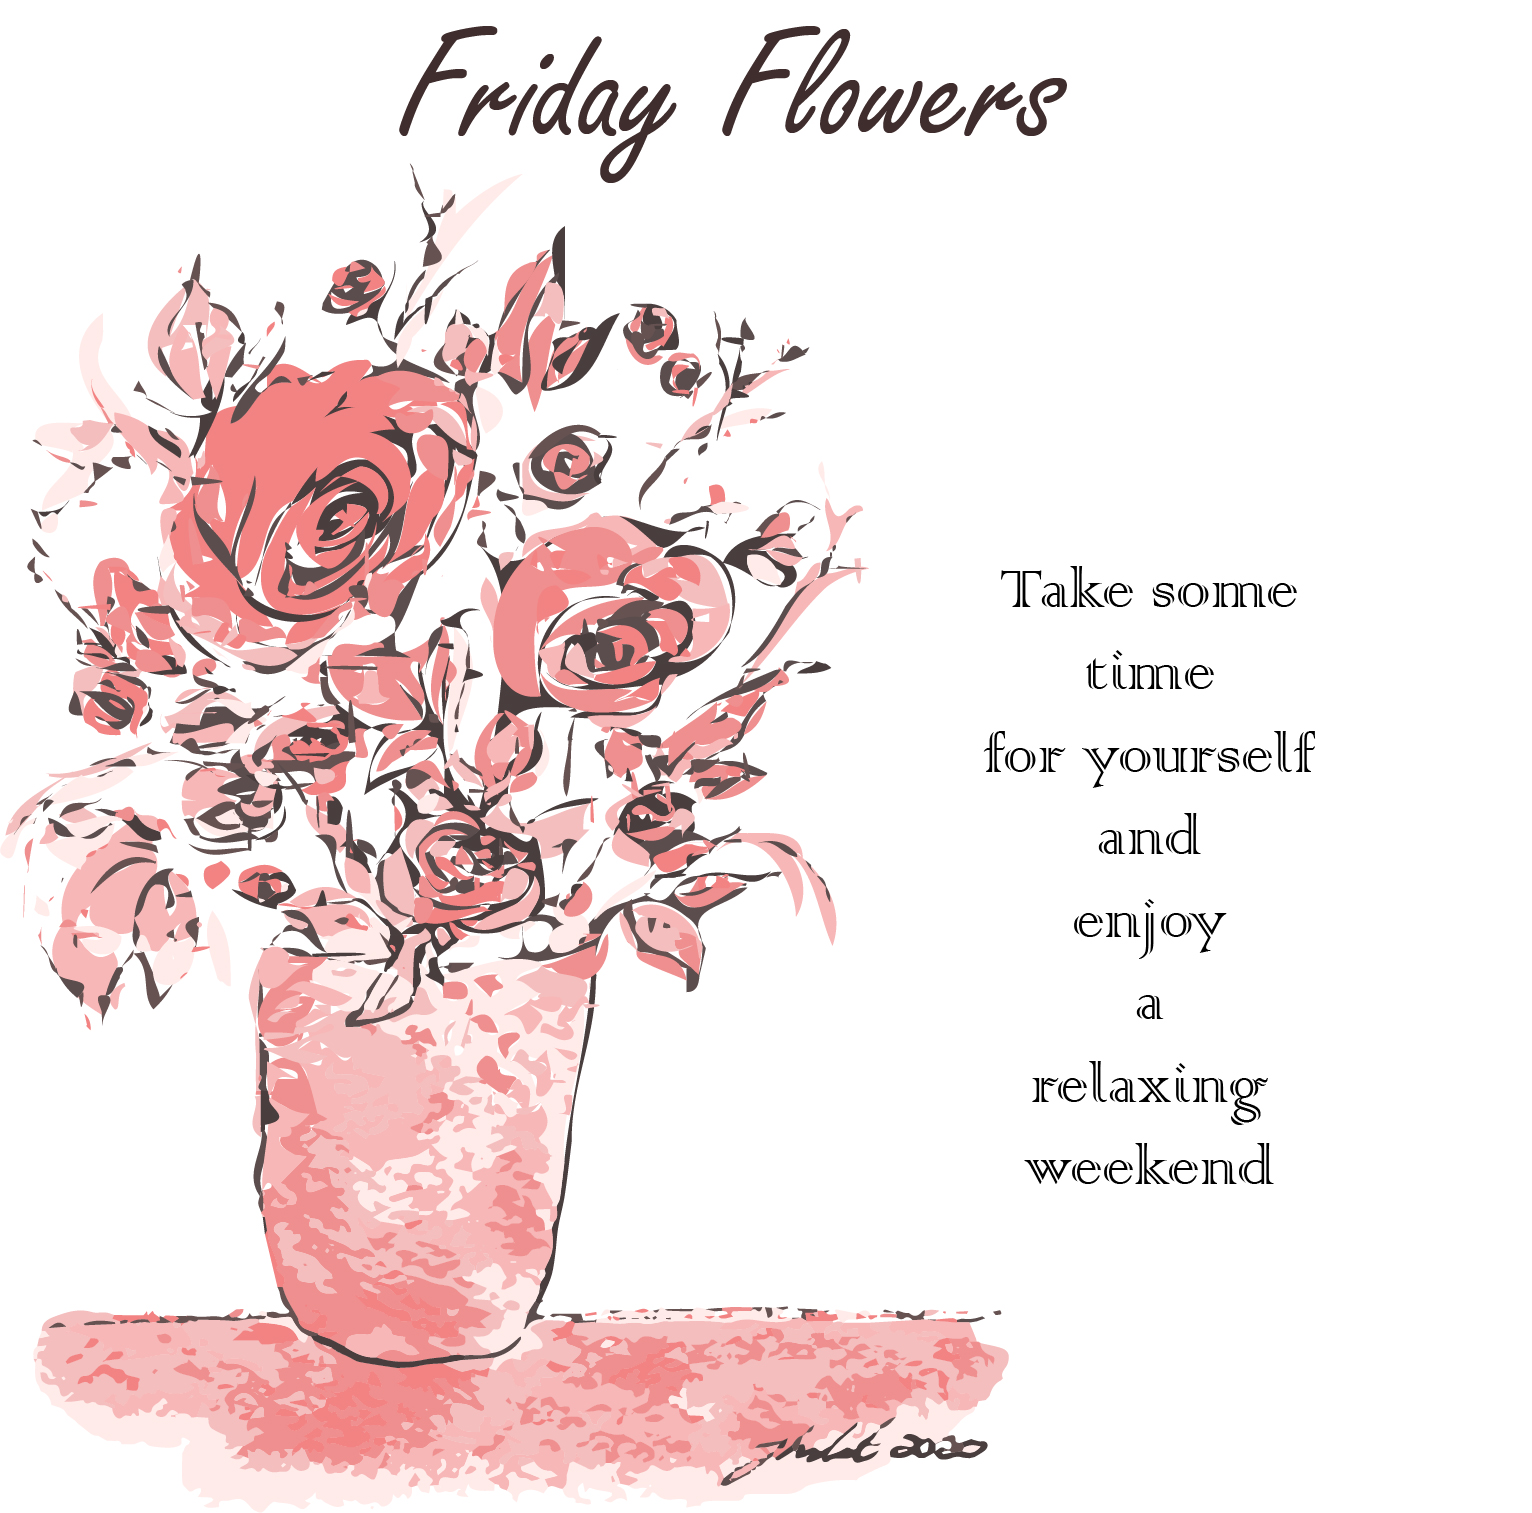 Friday Flowers & other surprises